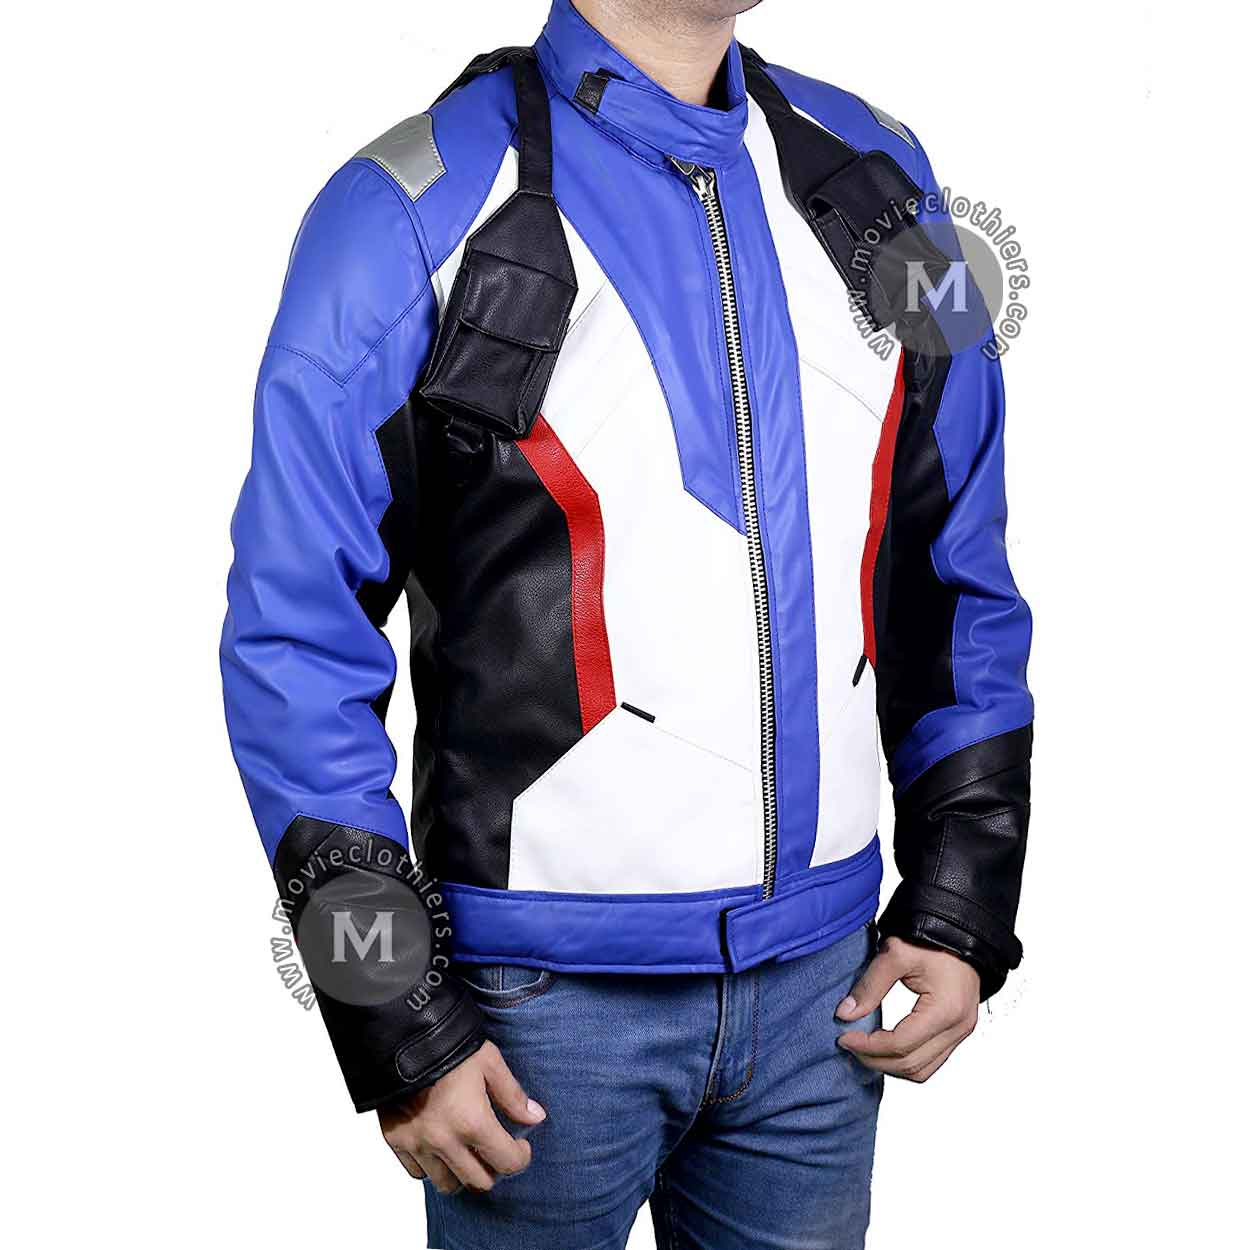 soldier 76 jacket leather